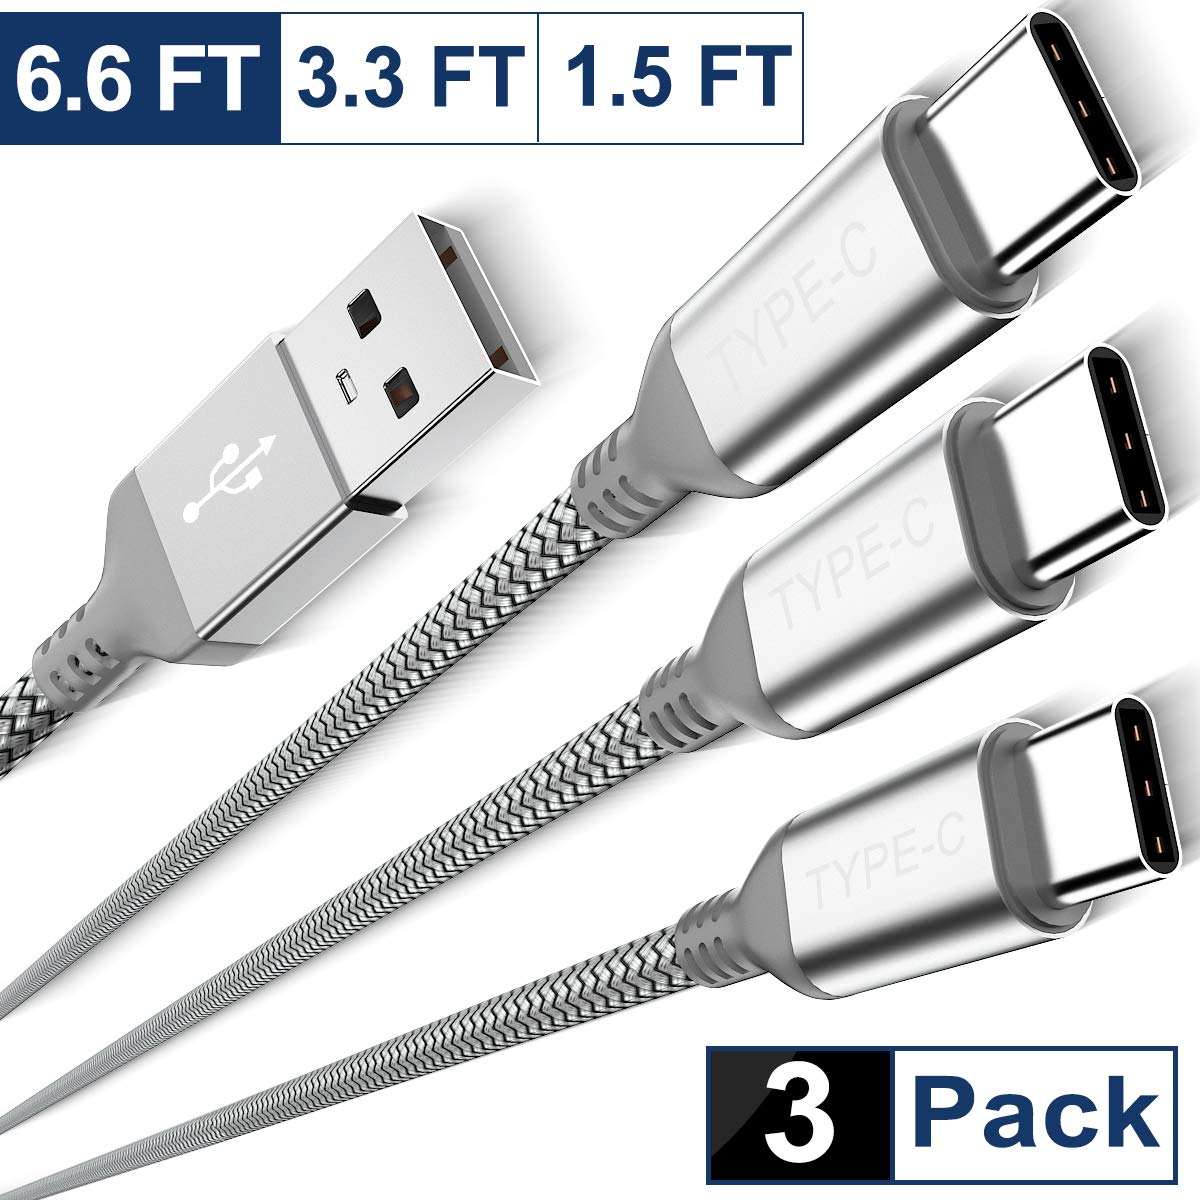 USB Type C Charger Cable 3-Pack (1.5/3.3/6.6 FT),Nylon Braided Charging Cord,Works with Samsung Galaxy Fold Note 9 8 S10 S9 S8 S10E 10 10E Plus,LG V50 V40 G8 G7 Thinq,Google Pixel 3 3a 2 XL,Moto Z4 Z3 by Elebase